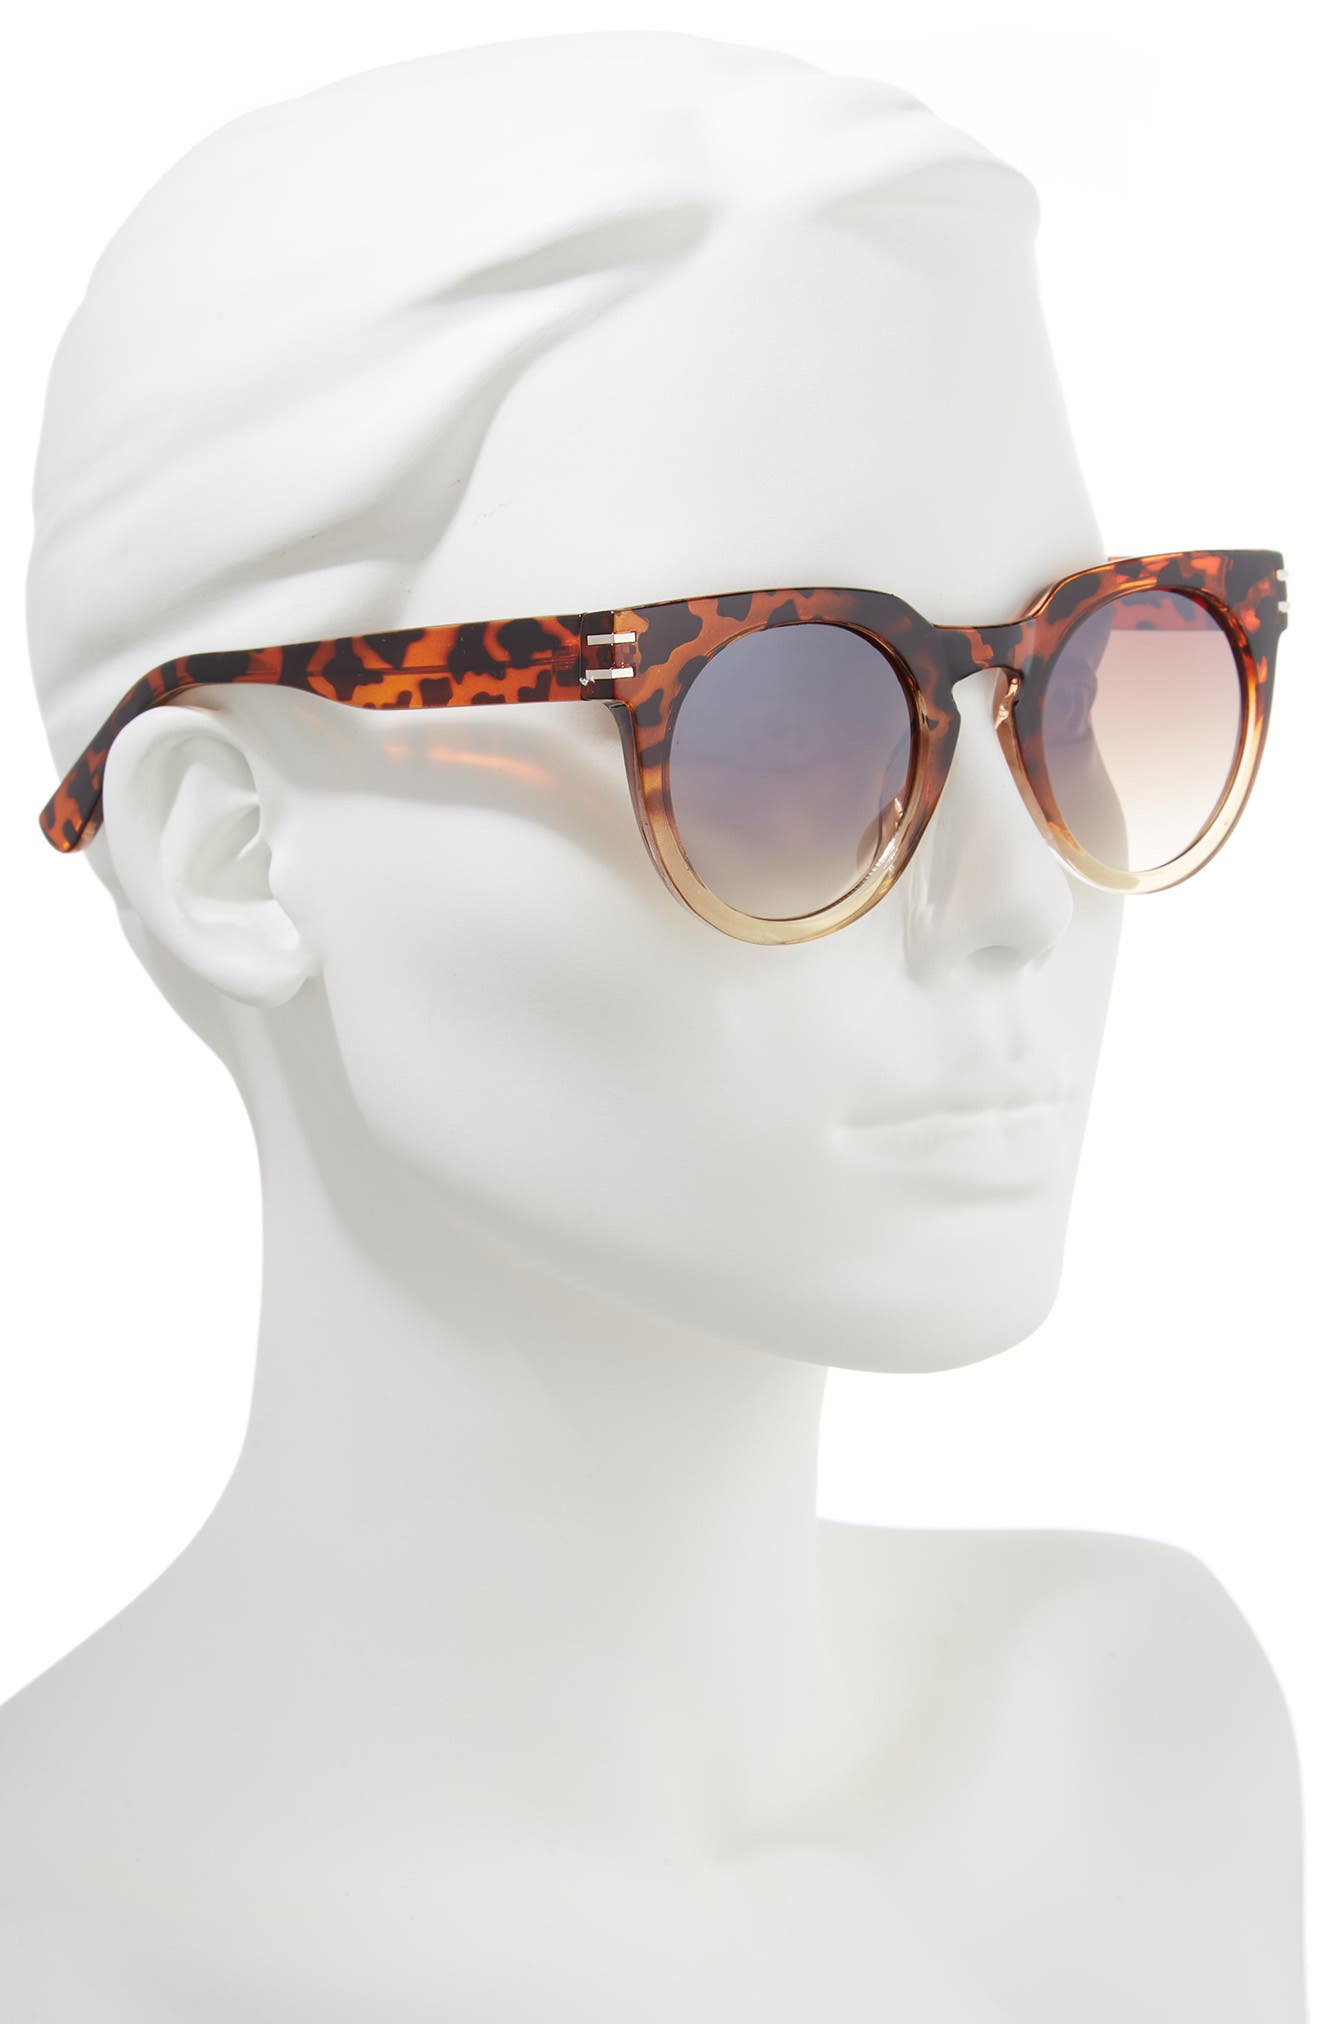 50mm Round Sunglasses,                             Alternate thumbnail 2, color,                             Leopard/ Brown